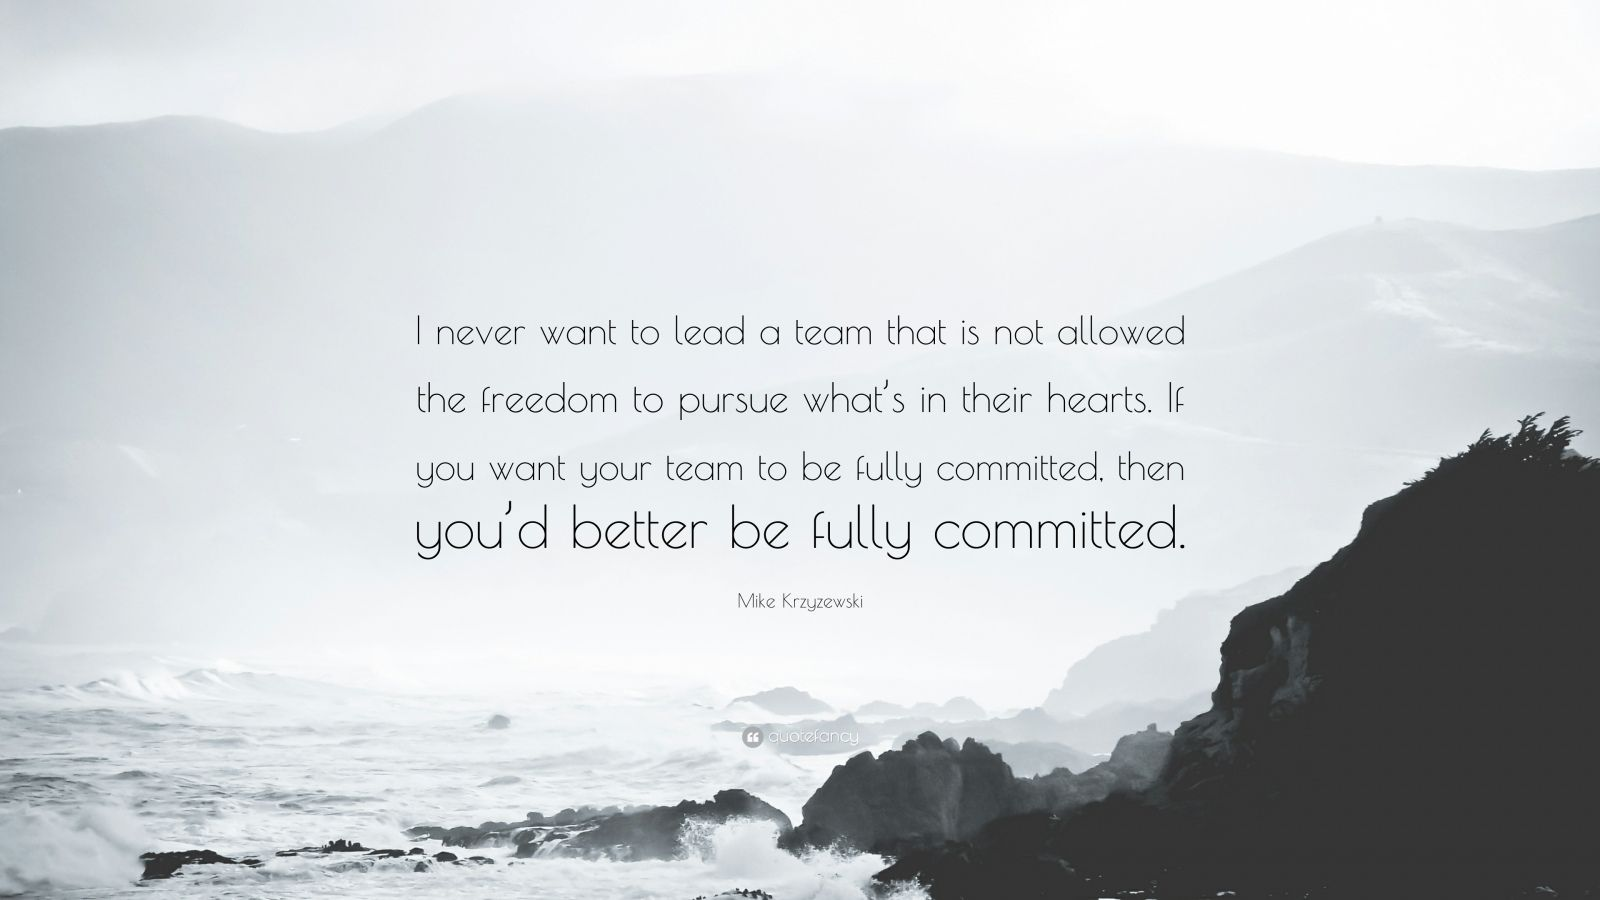 """Mike Krzyzewski Quote: """"I never want to lead a team that is not allowed the freedom to pursue what's in their hearts. If you want your team to be fully committed, then you'd better be fully committed."""""""